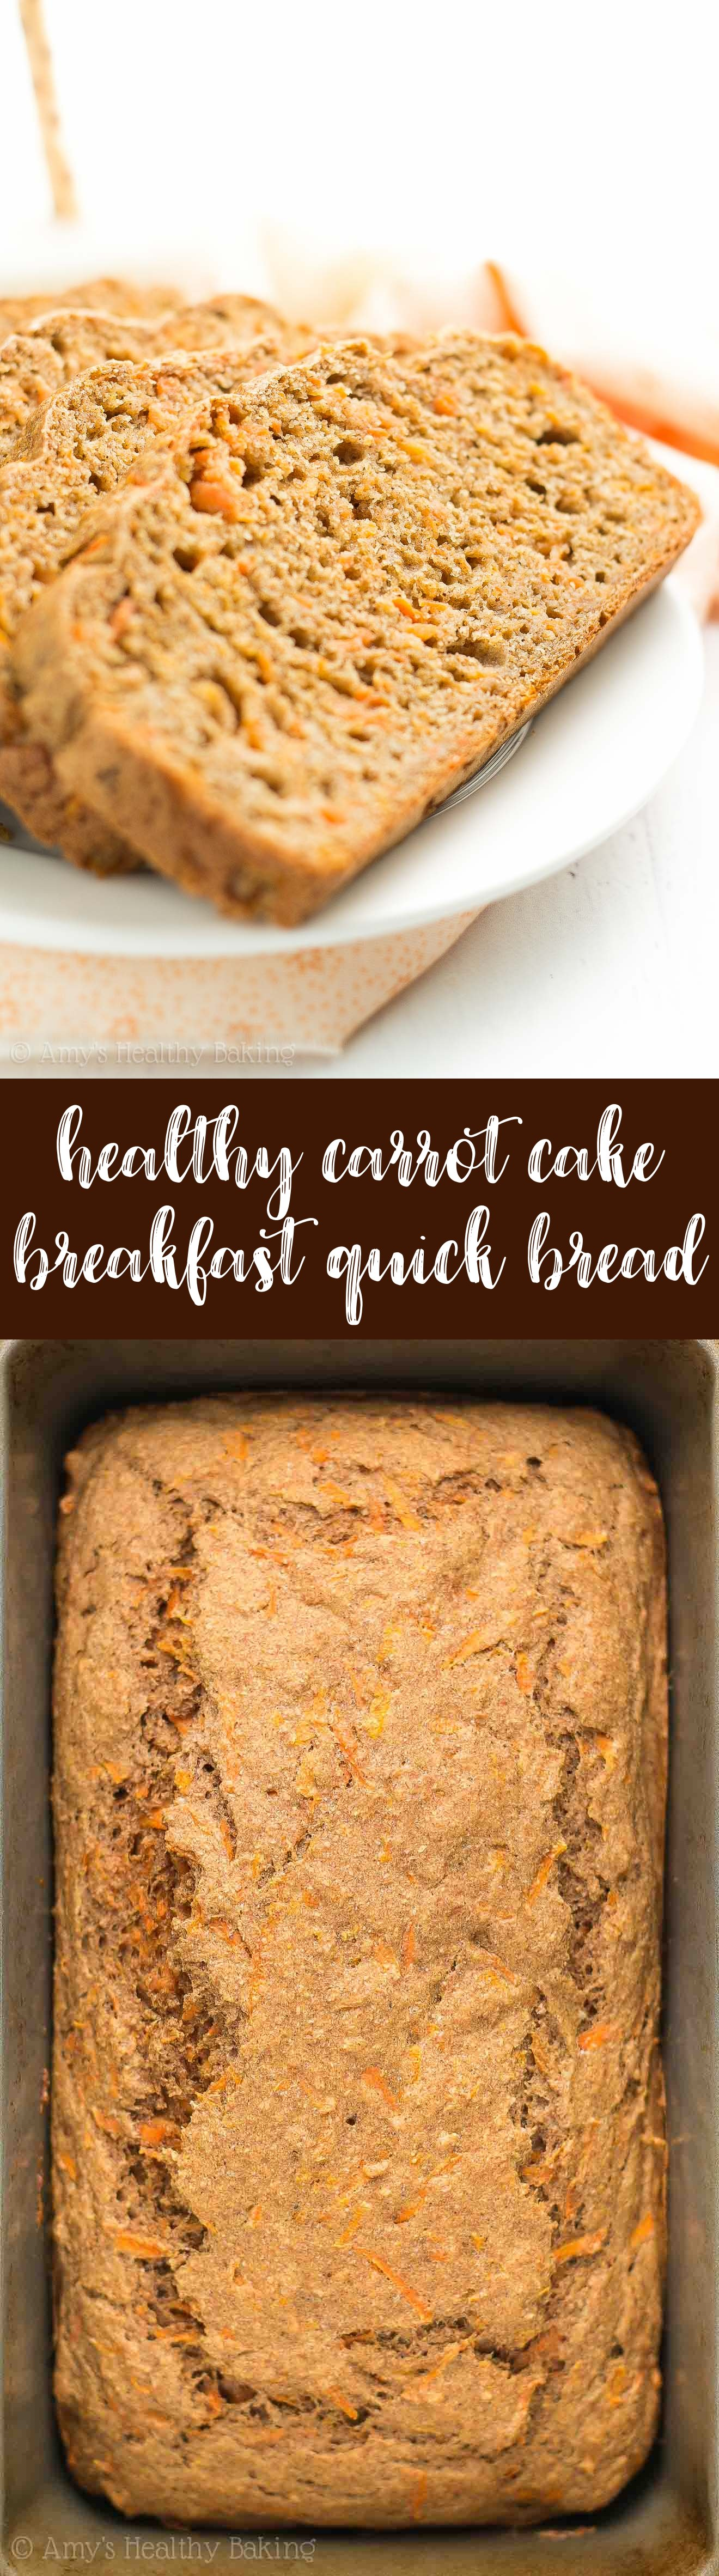 Easy and Healthy Carrot Cake Breakfast Quick Bread recipe